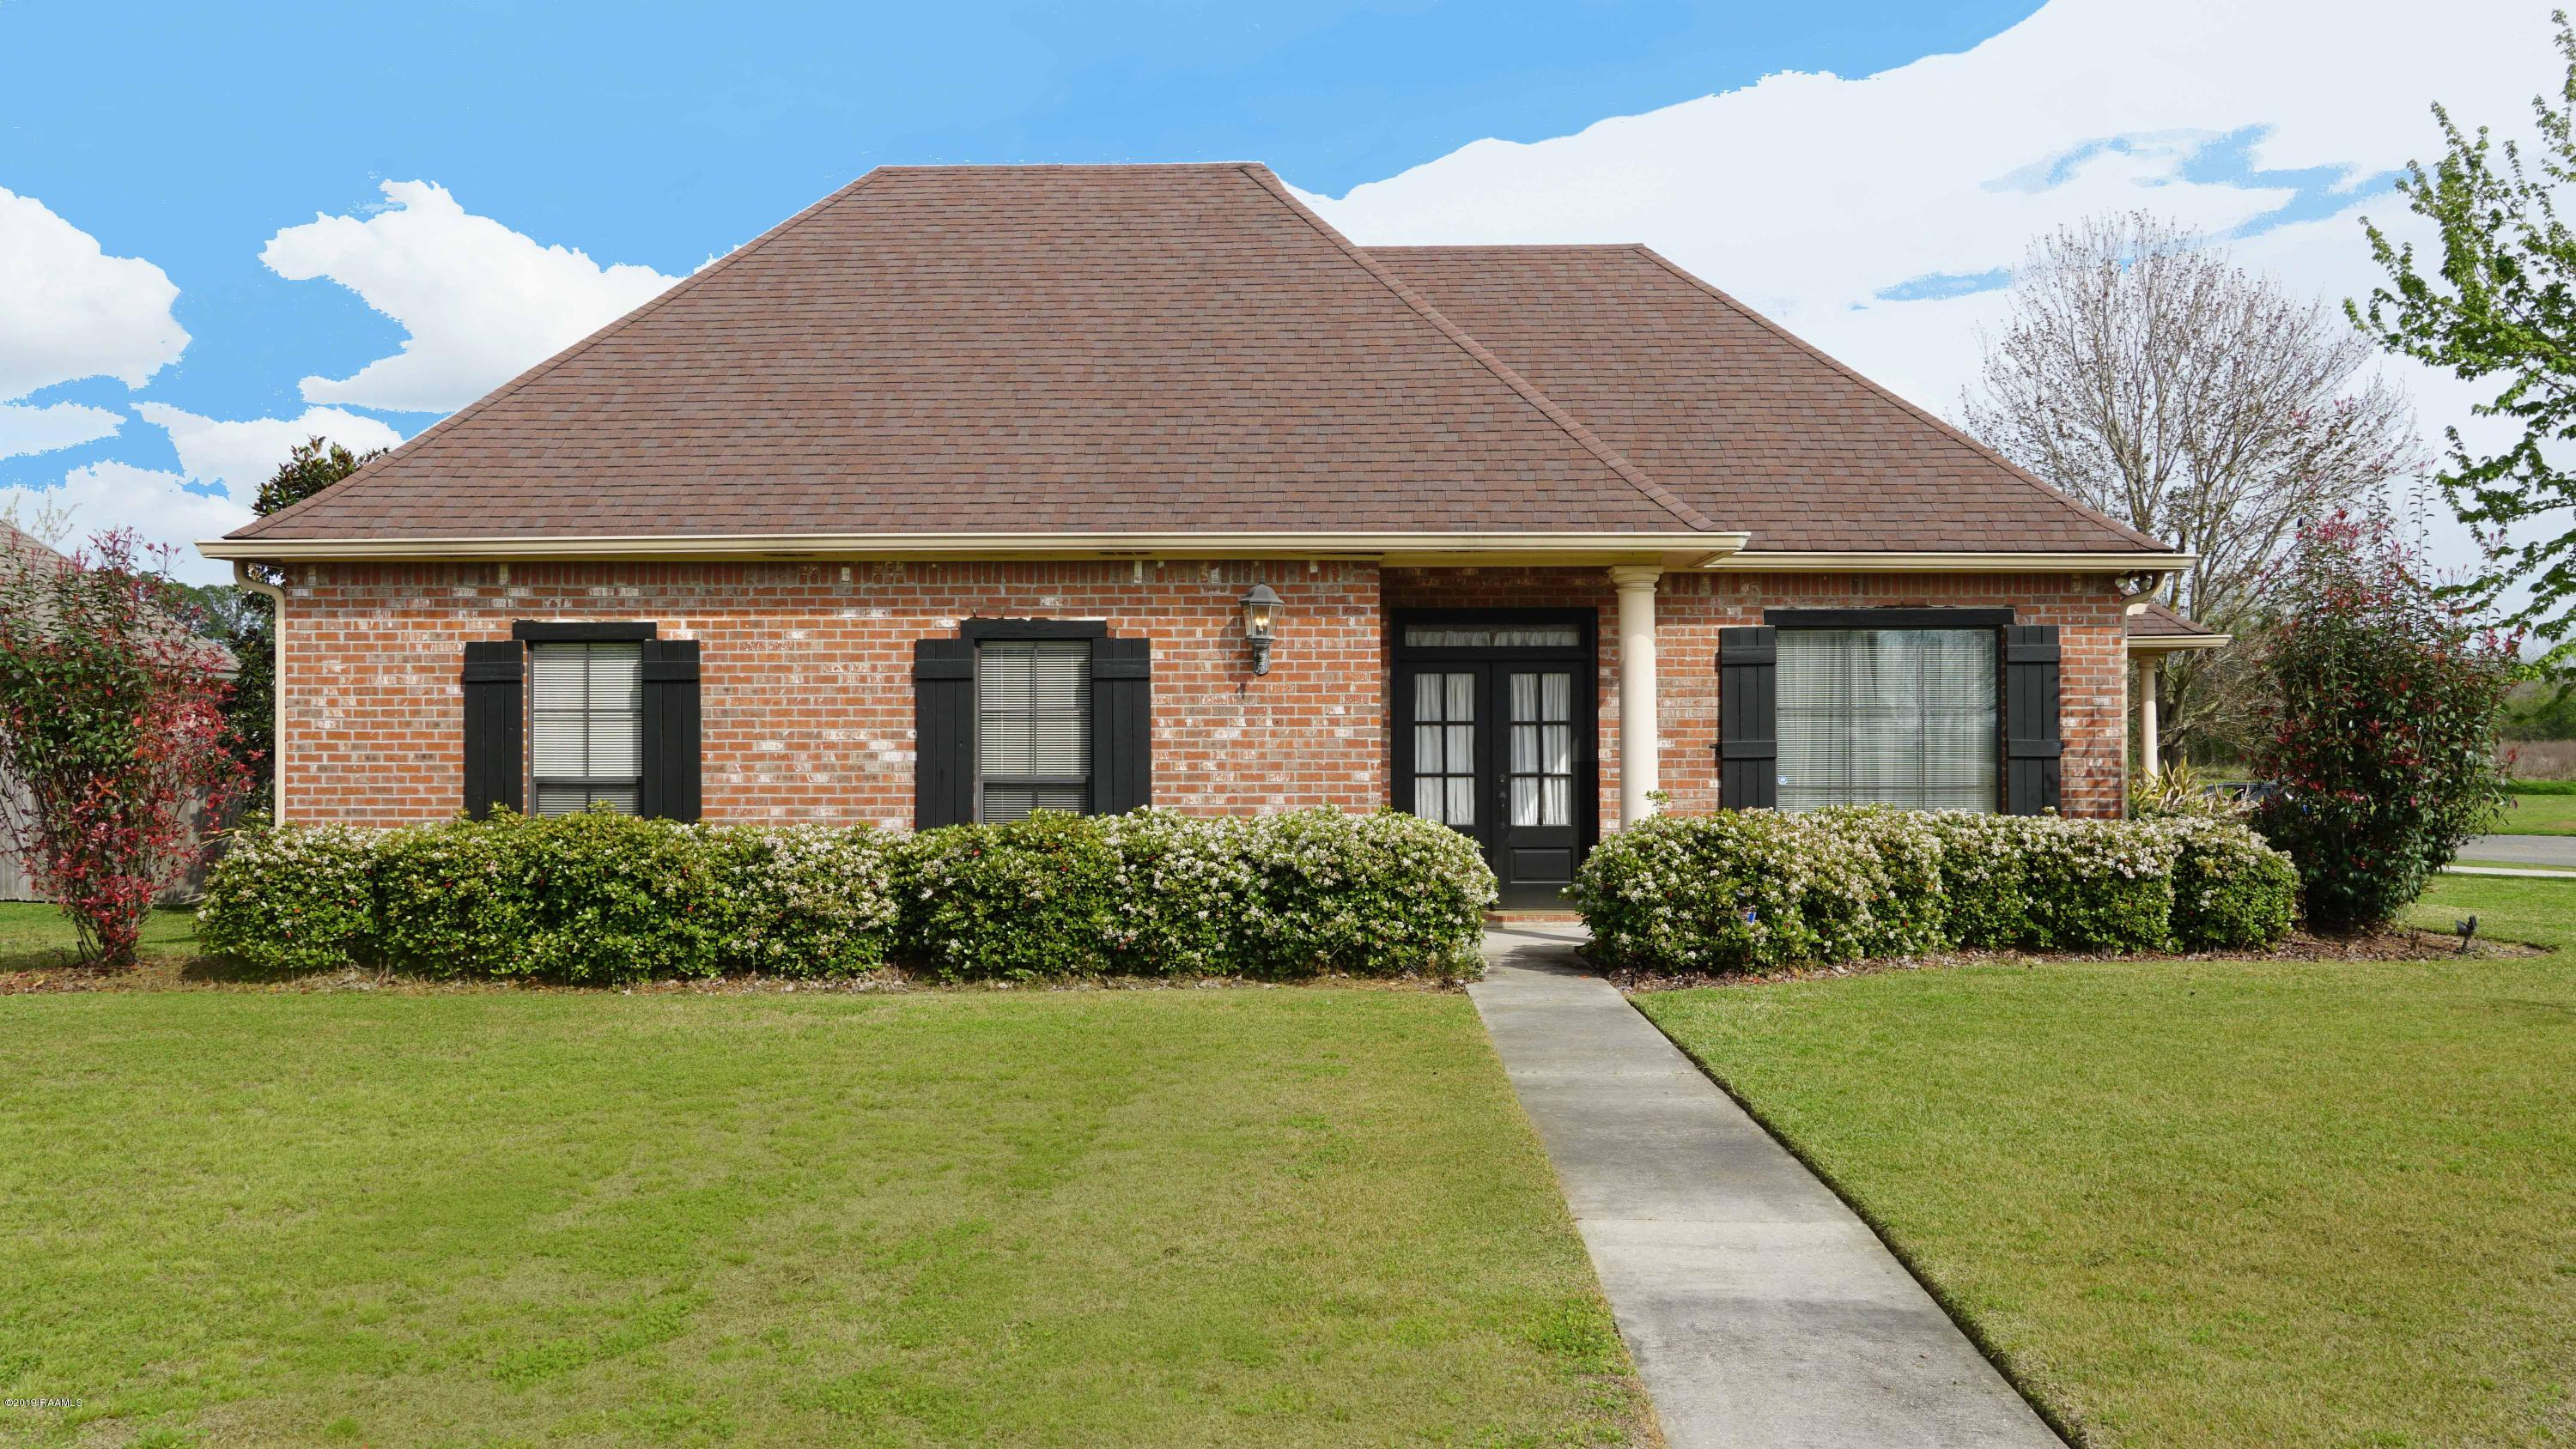 100 Hanna Drive, Youngsville, LA 70592 Photo #1